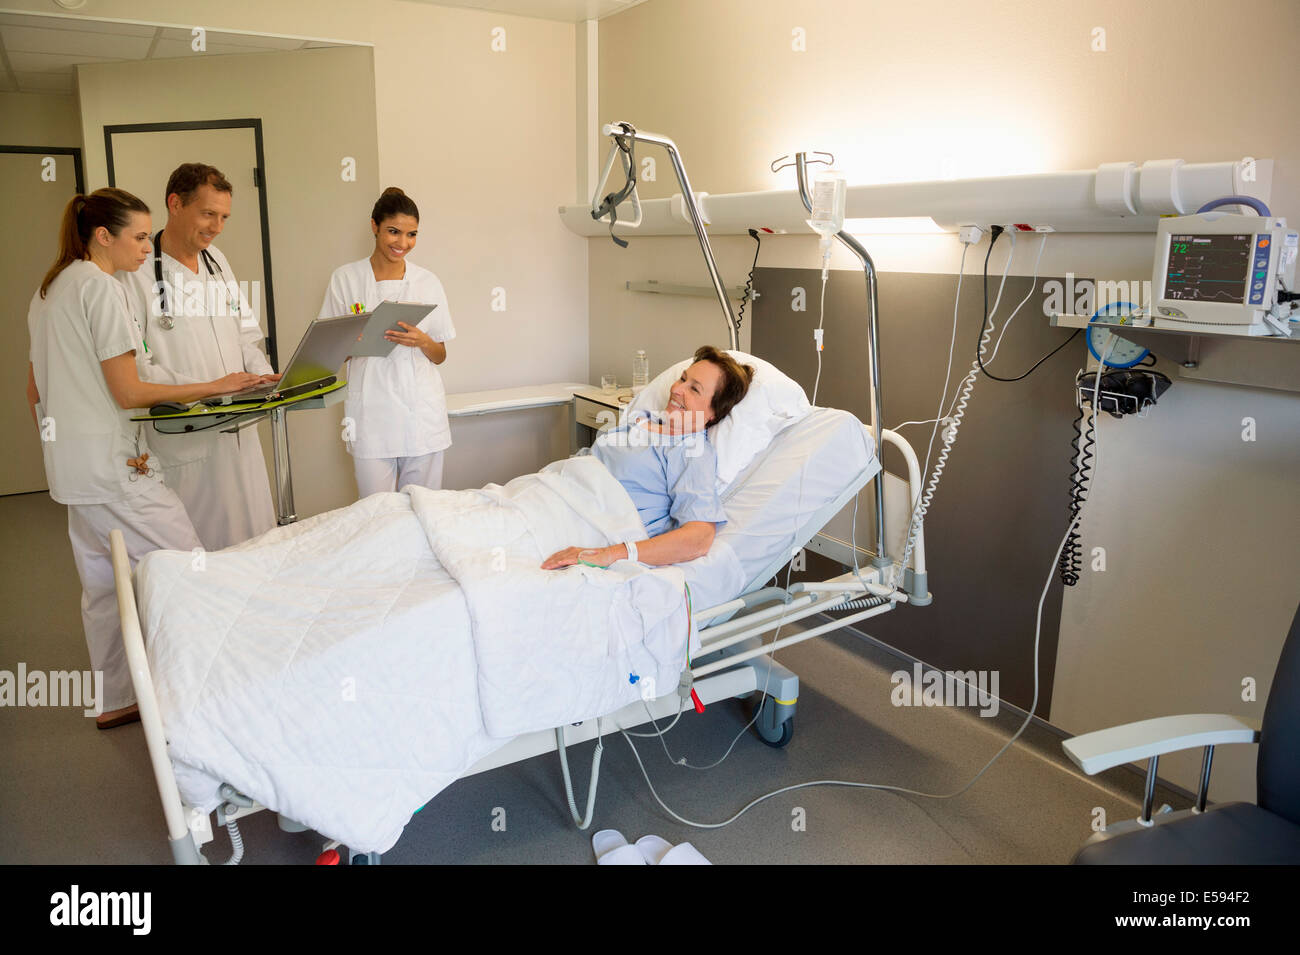 Medical team attending female patient on hospital bed - Stock Image